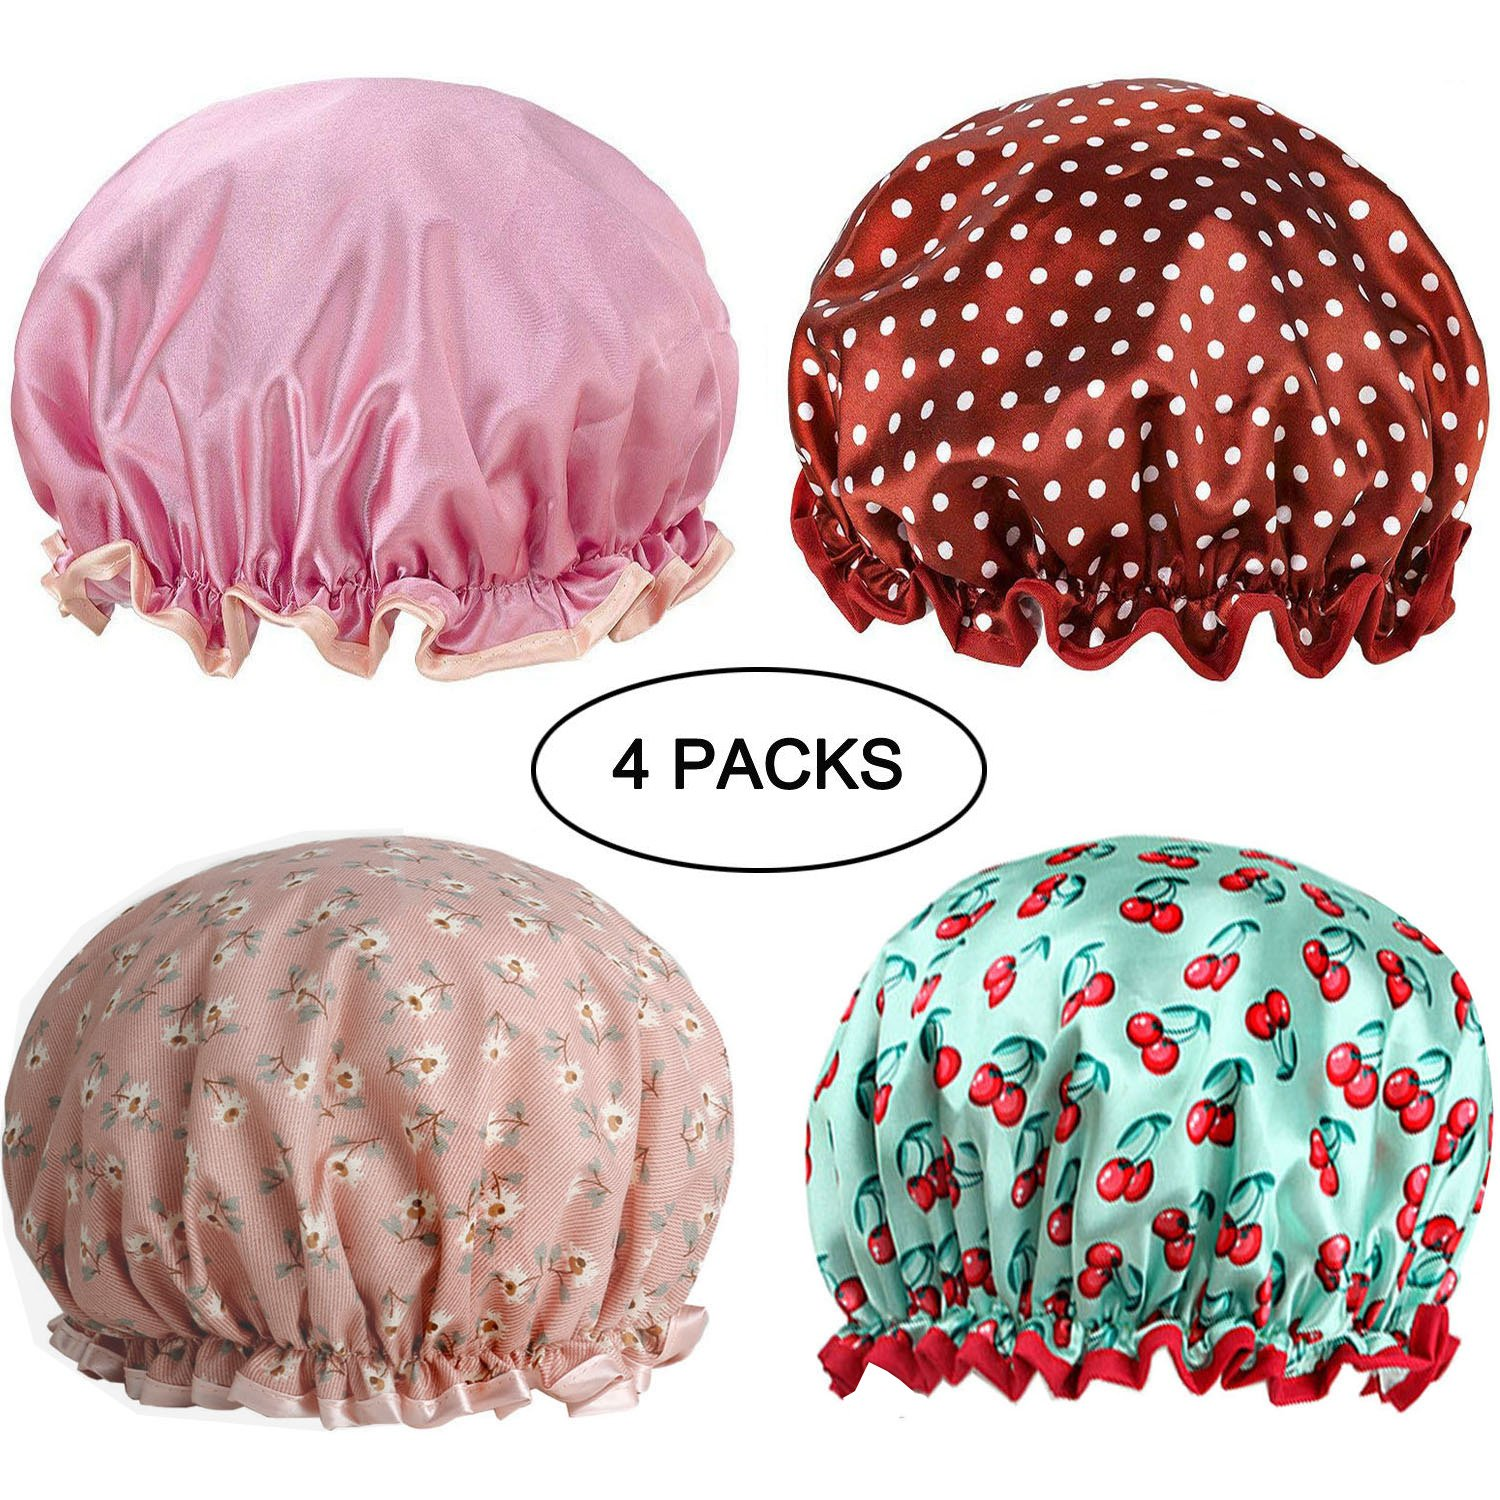 4 Pack Waterproof Lined Satin Shower Caps Reusable Washable Elastic Double Layers Shower Hats Salon SPA Dustproof Anti-fume Bath Caps for Women for Long Hair(Color1) Wuinio